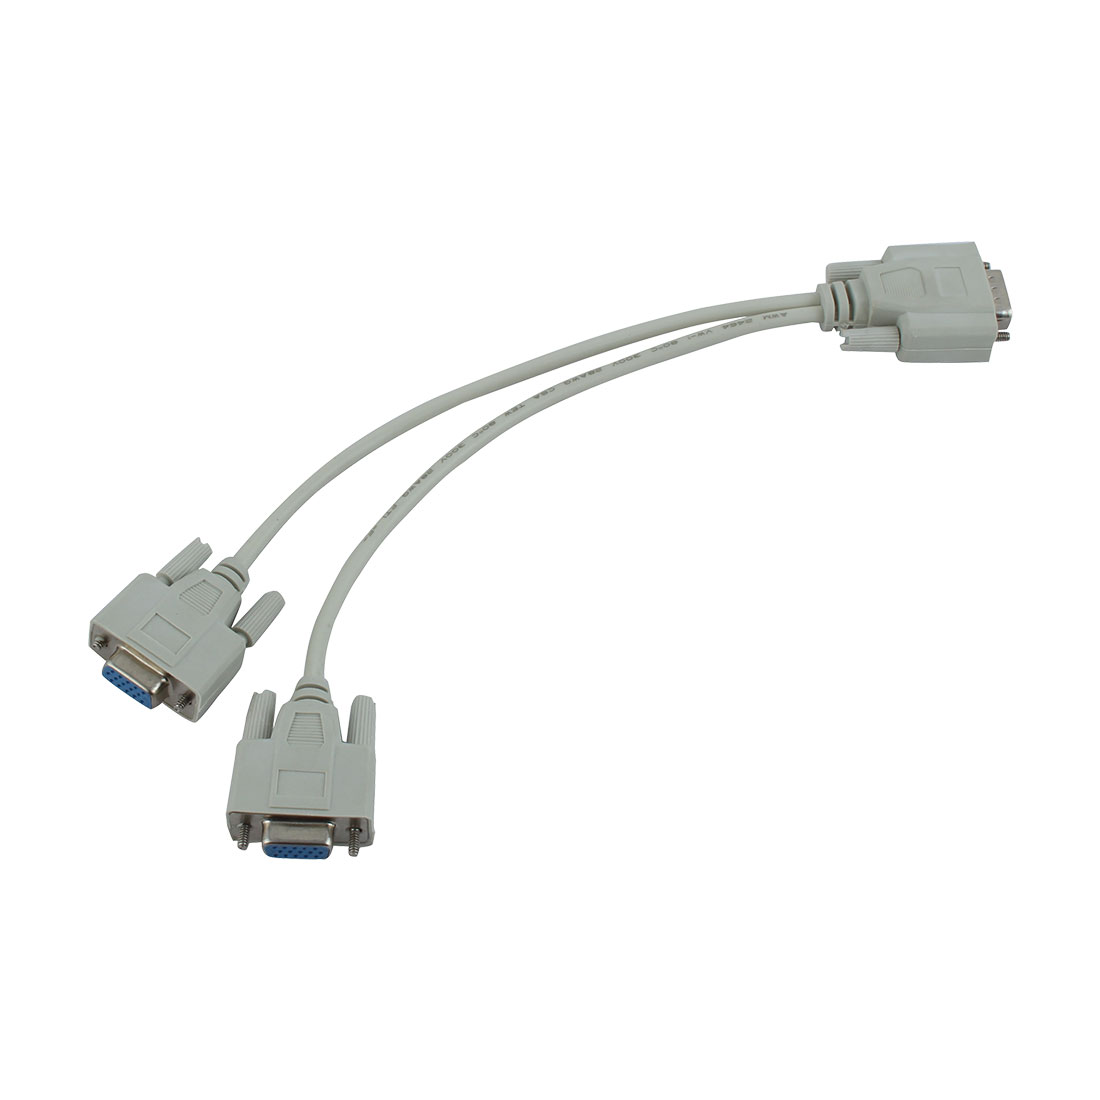 Video 1 Male/2 Female VGA Adapter Cable Splitter Converter 27.5cm Long